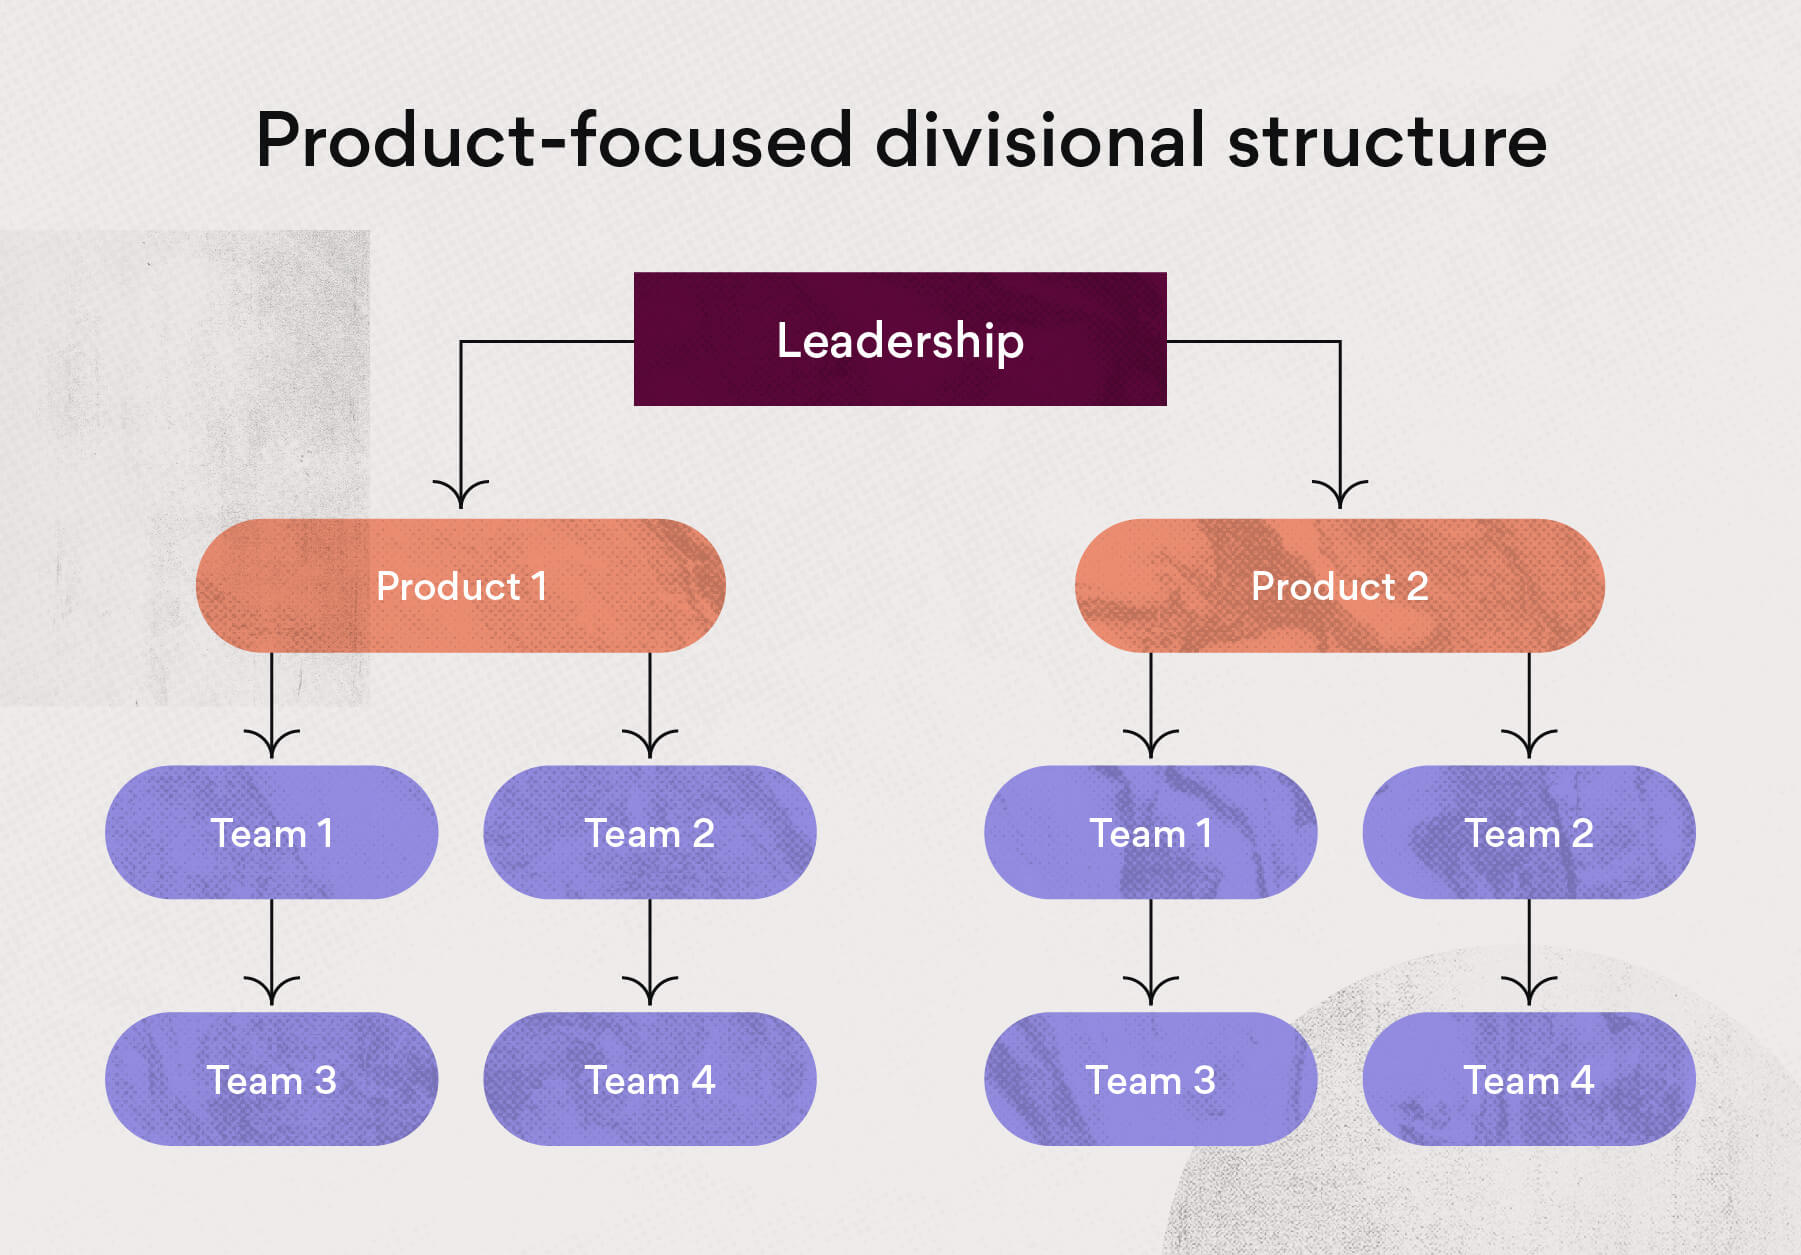 Product-focused divisional structure